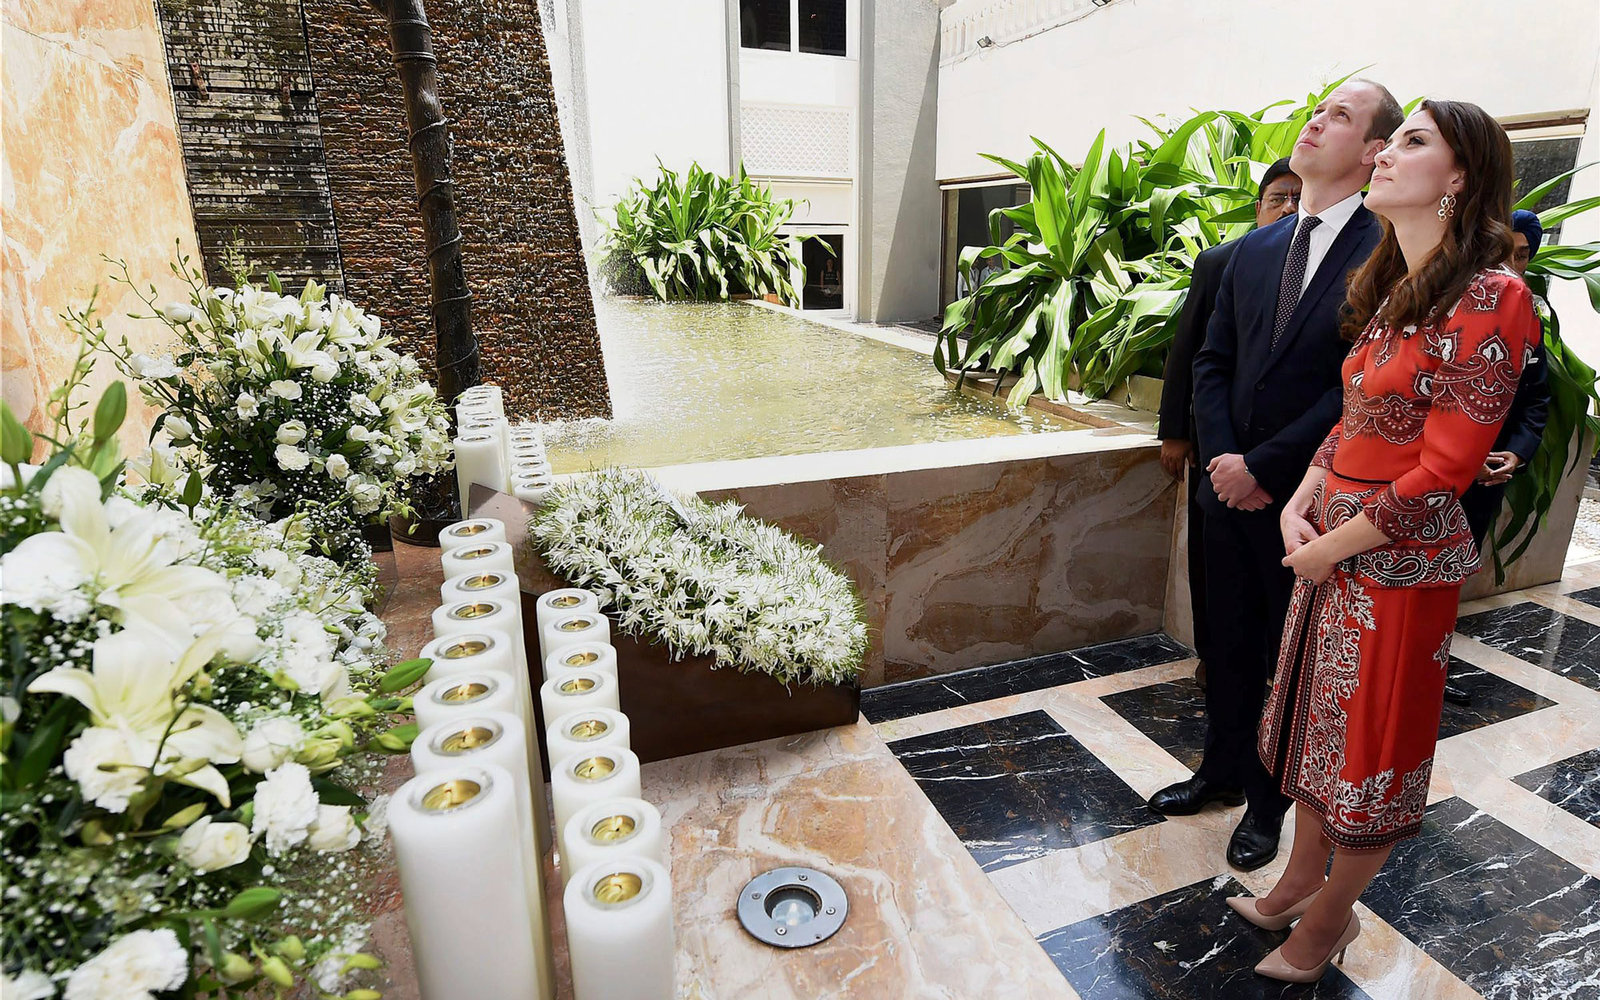 Britain's Prince William, Duke of Cambridge(C)and Catherine, Duchess of Cambridge(R)   look on during a ceremony at the martyrs memorial at Taj Mahal Palace Hotel in Mumbai on April 10, 2016. Britain's Prince William and wife Kate landed in Mumbai for a